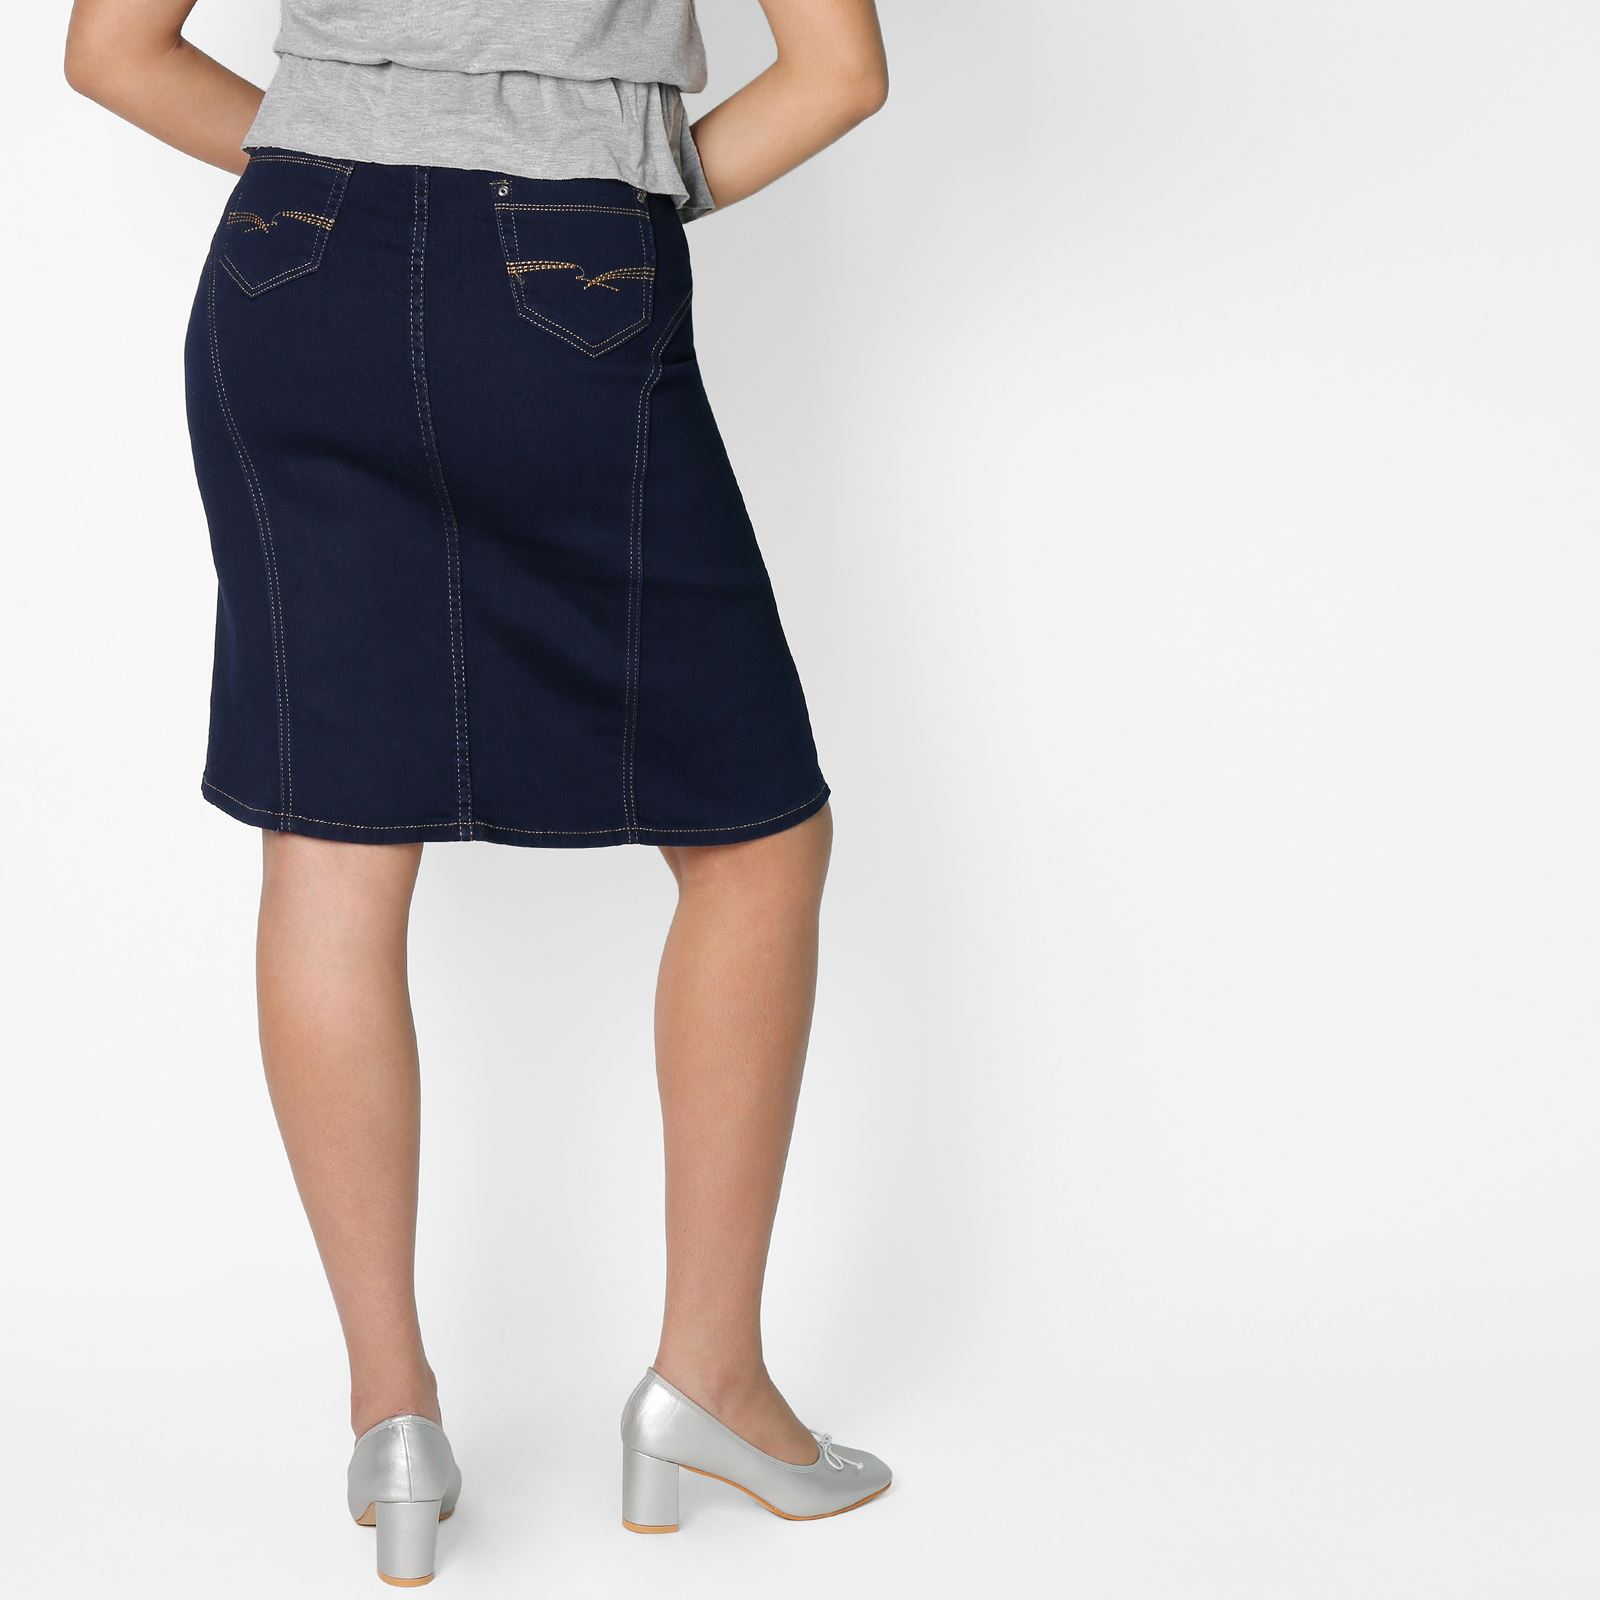 Womens-Denim-Pencil-Skirt-Vintage-A-Line-Ladies-Classic-Knee-Long-Size-8-18 thumbnail 8